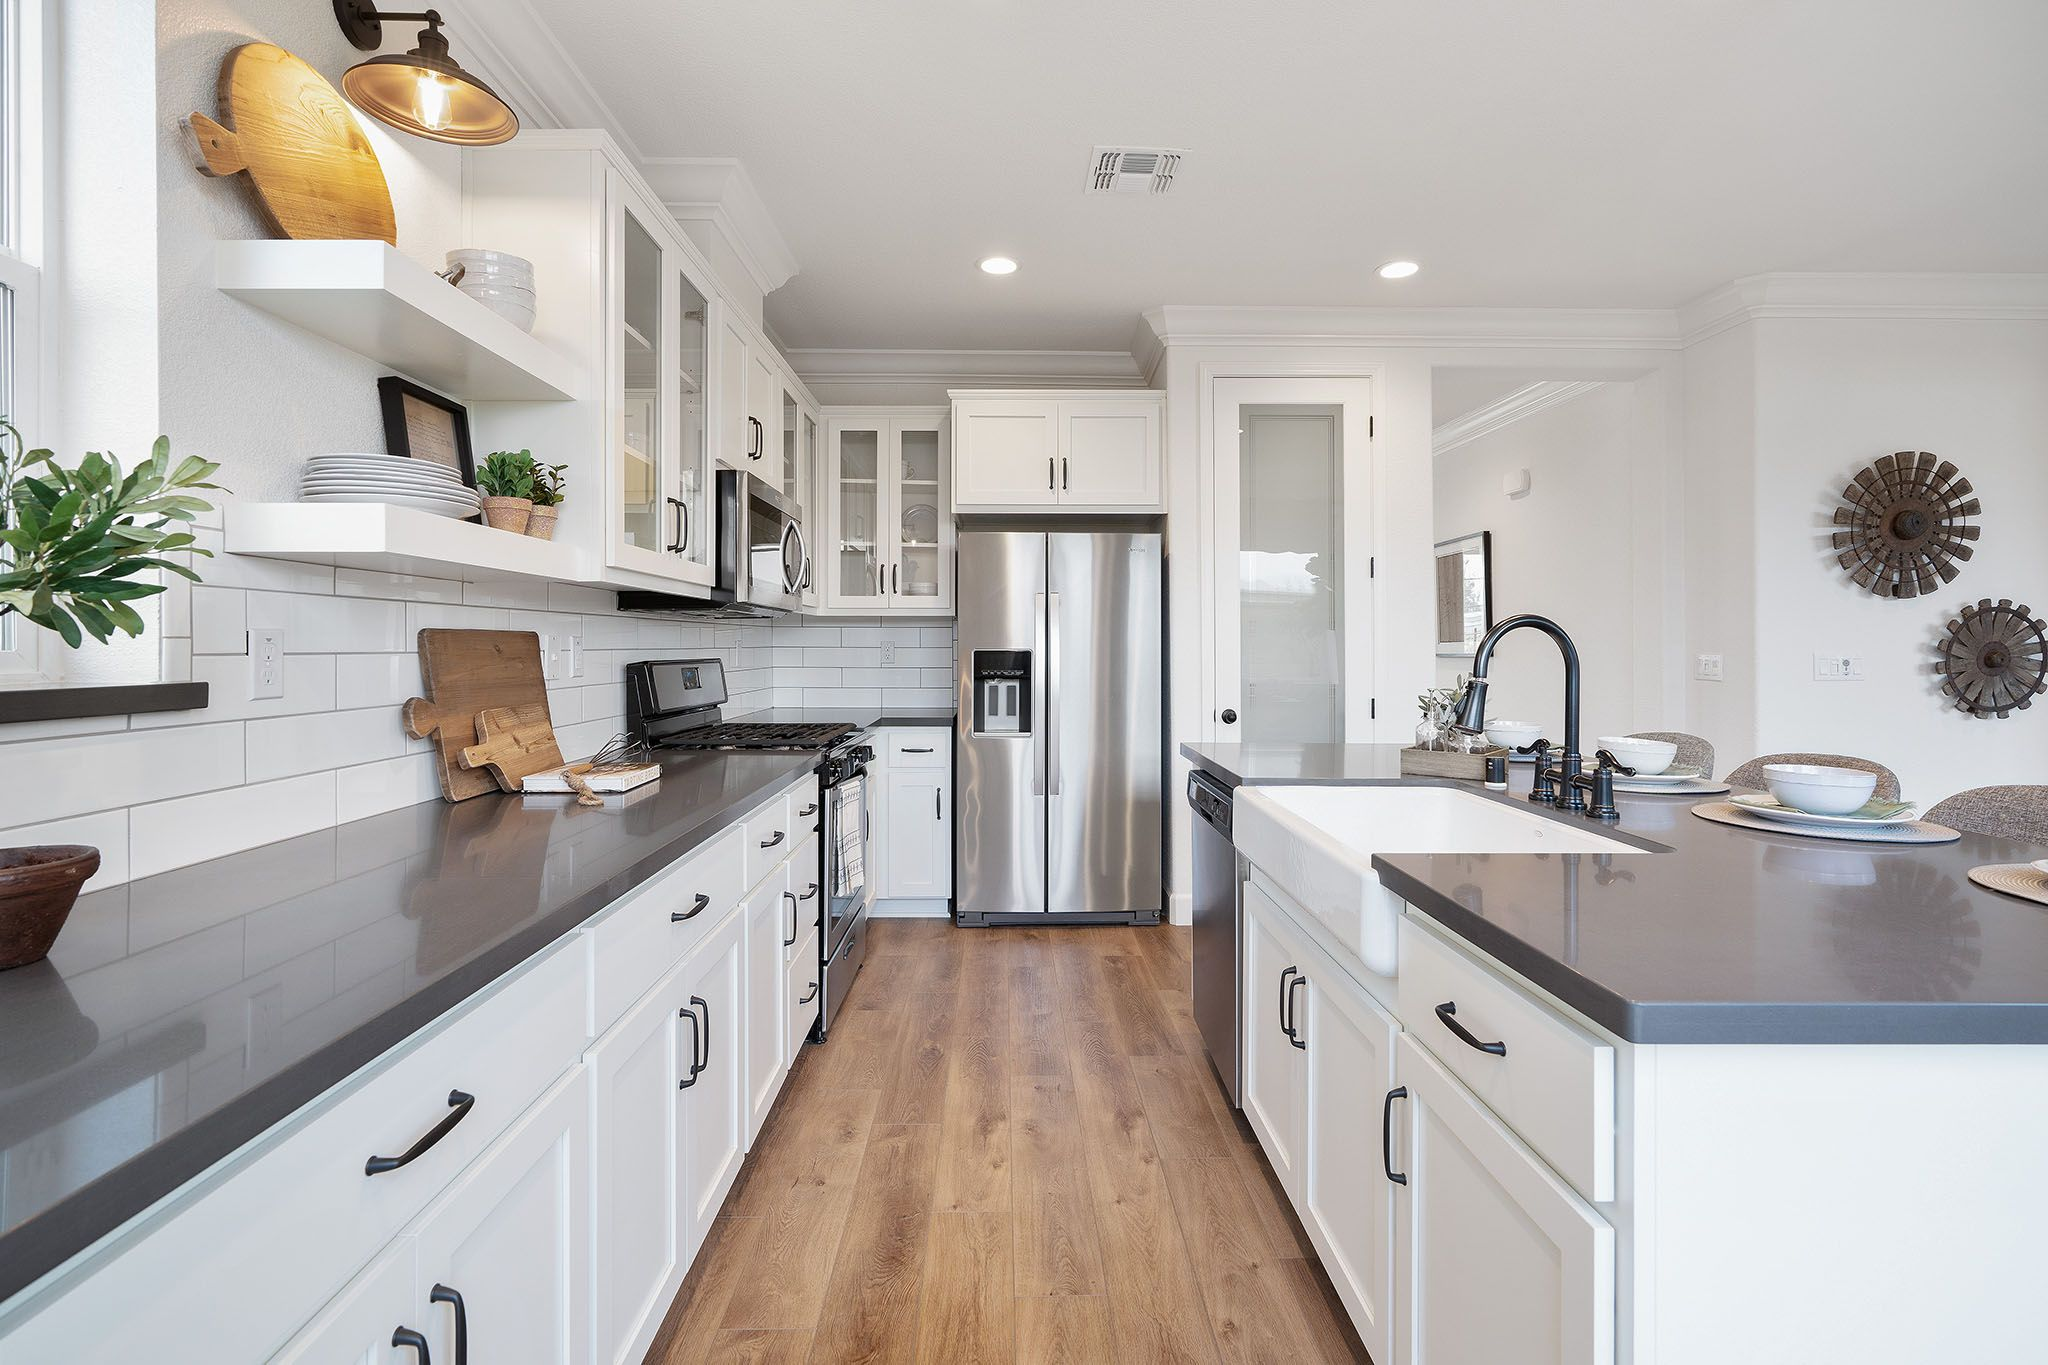 Kitchen featured in the Burnett By Discovery Homes in Vallejo-Napa, CA